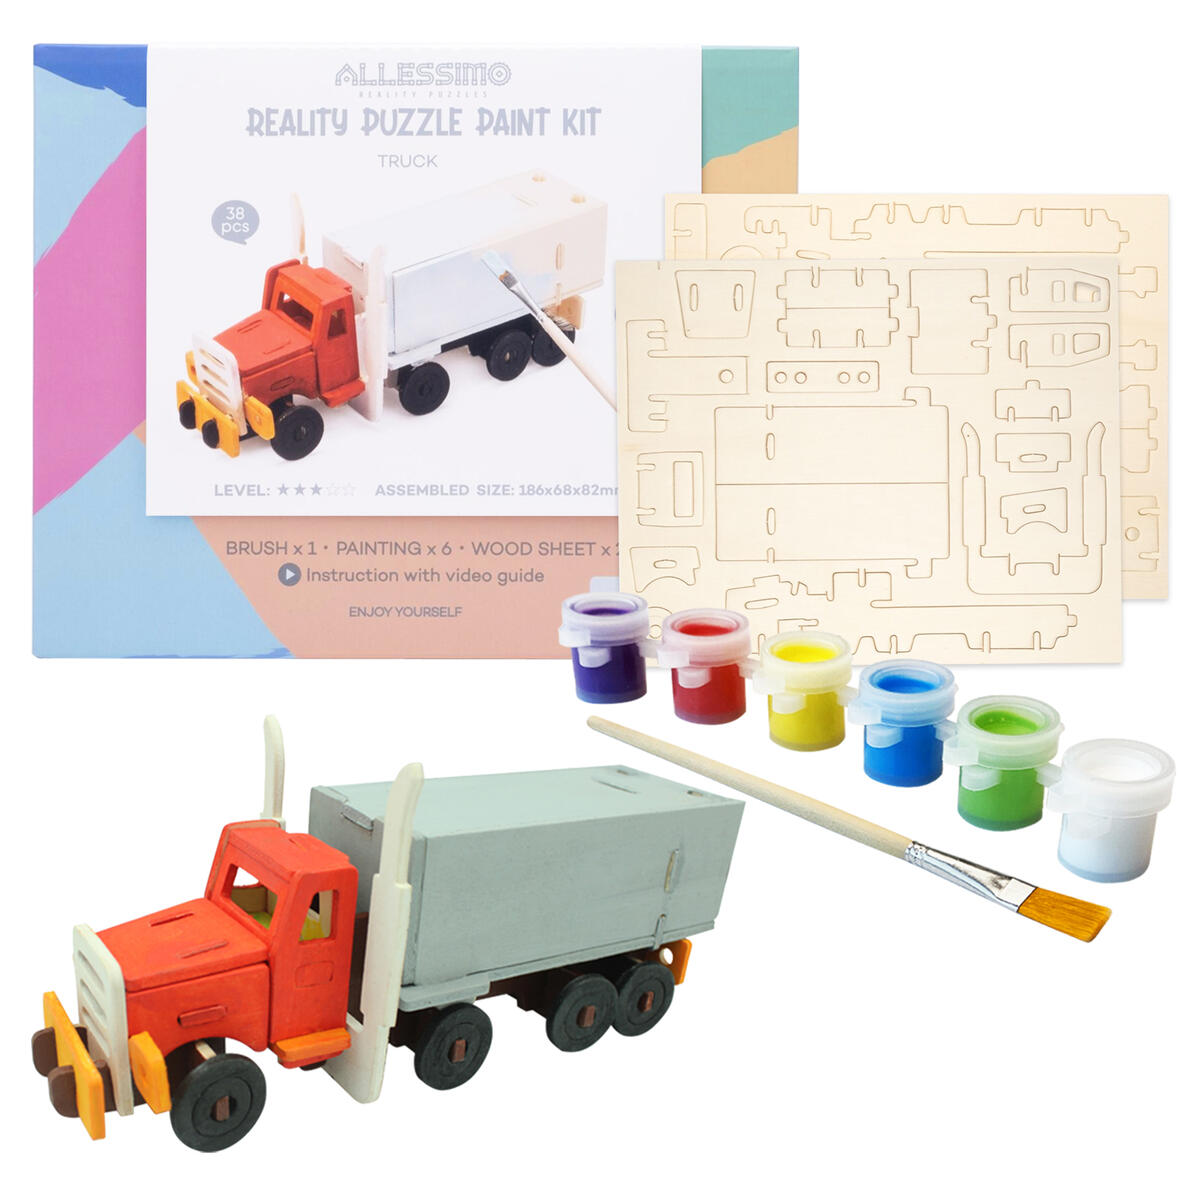 Allessimo 3D Paint Puzzle Reality Wooden (Truck - 38pcs) Model Paint Kit with Brush Toys for Kids Puzzle Build 3D Puzzles Educational Fun Crafts Building DIY